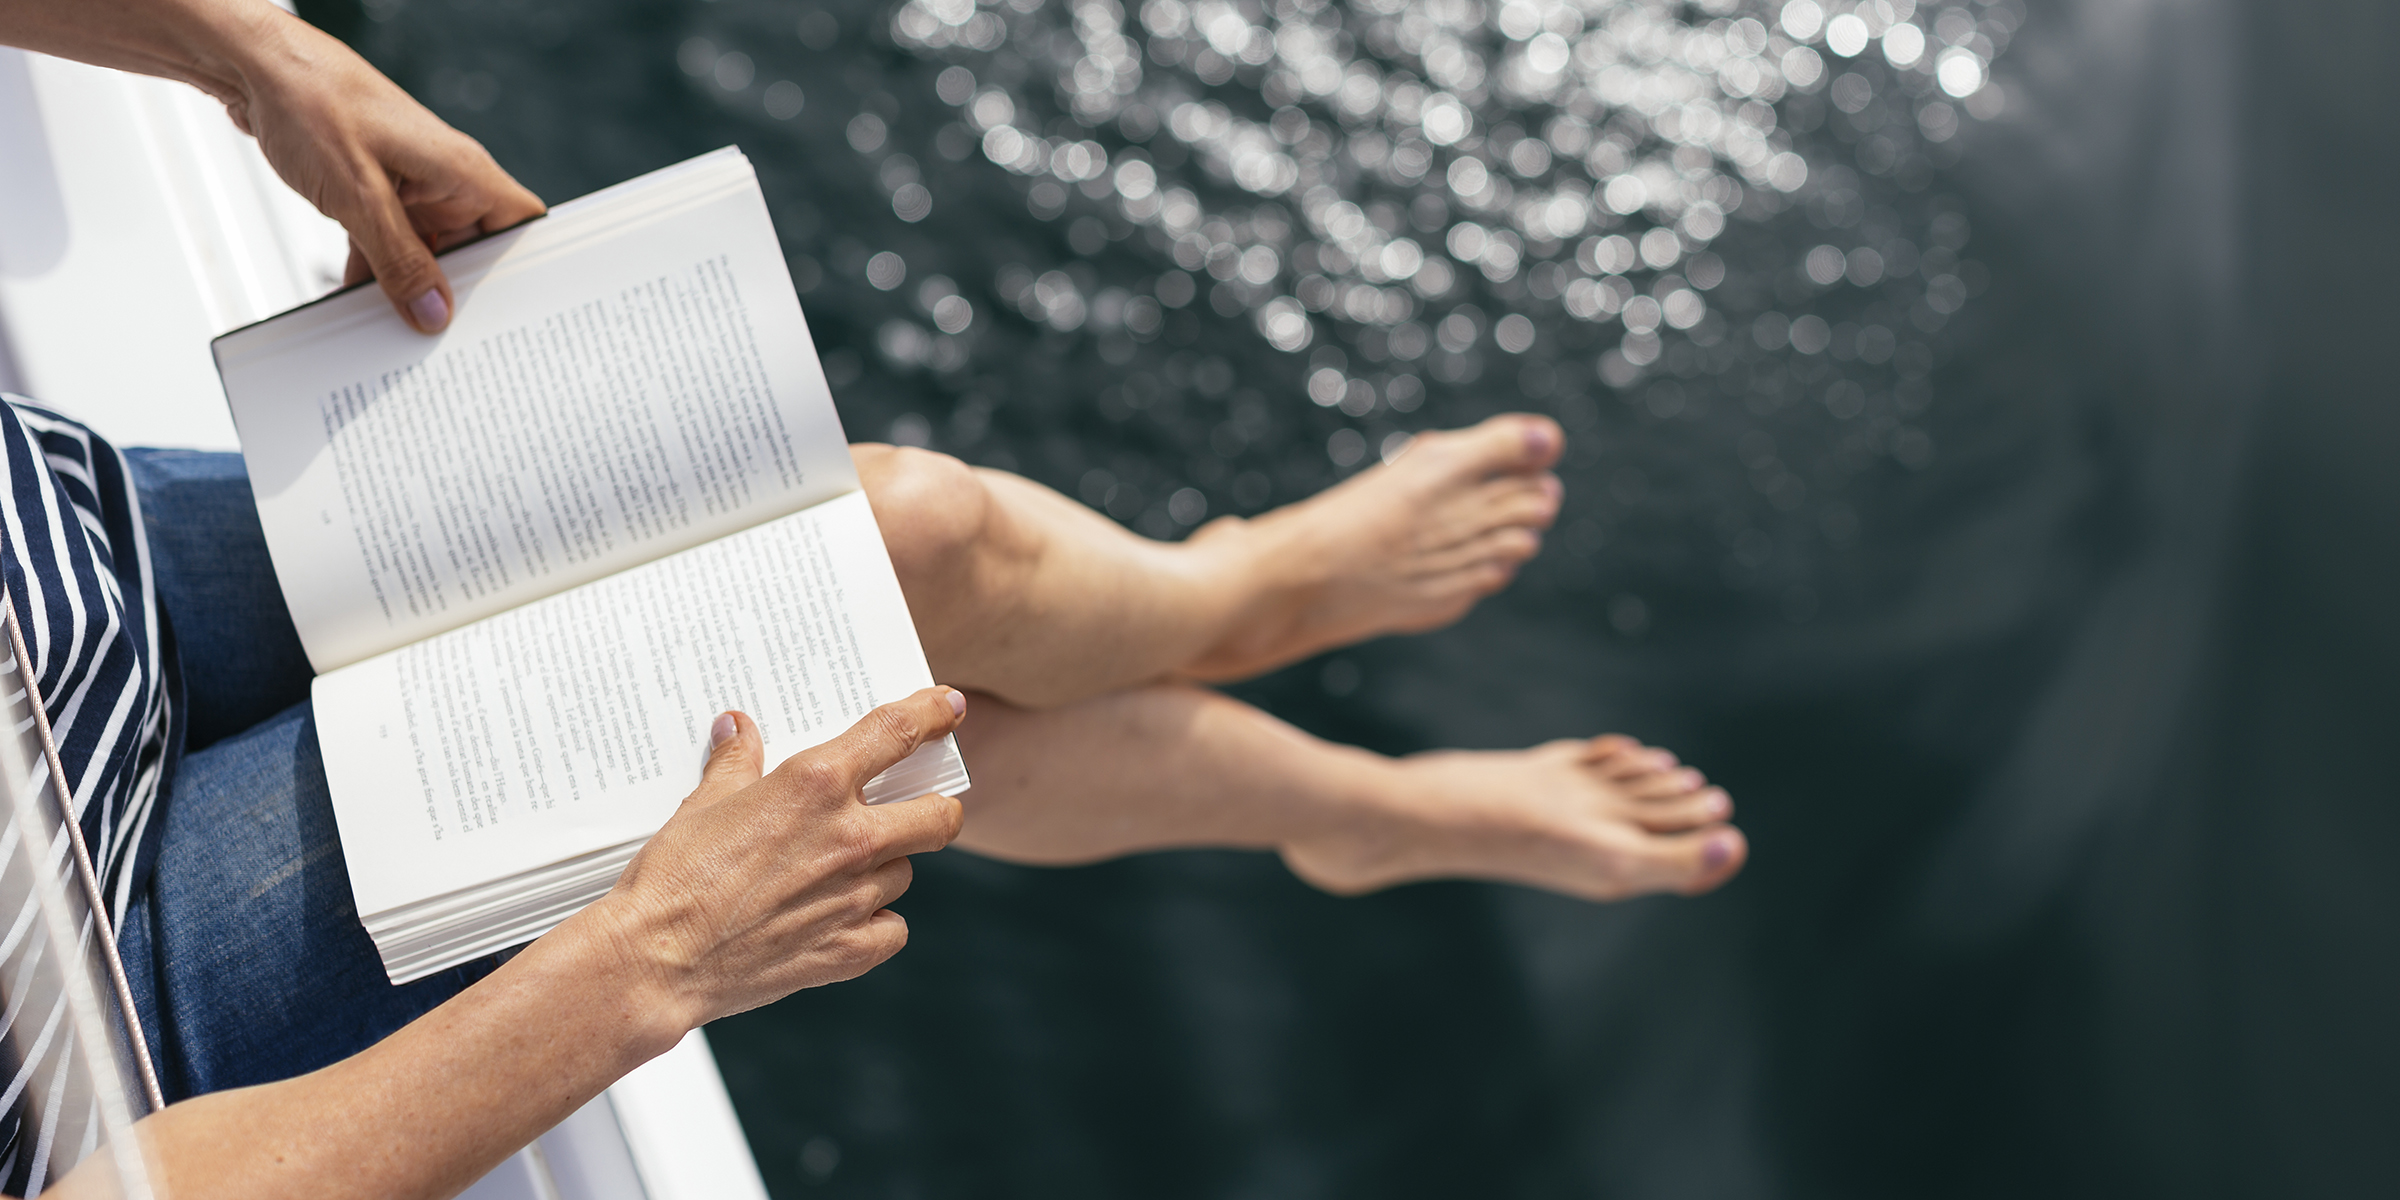 20 beach reads you won't want to put down